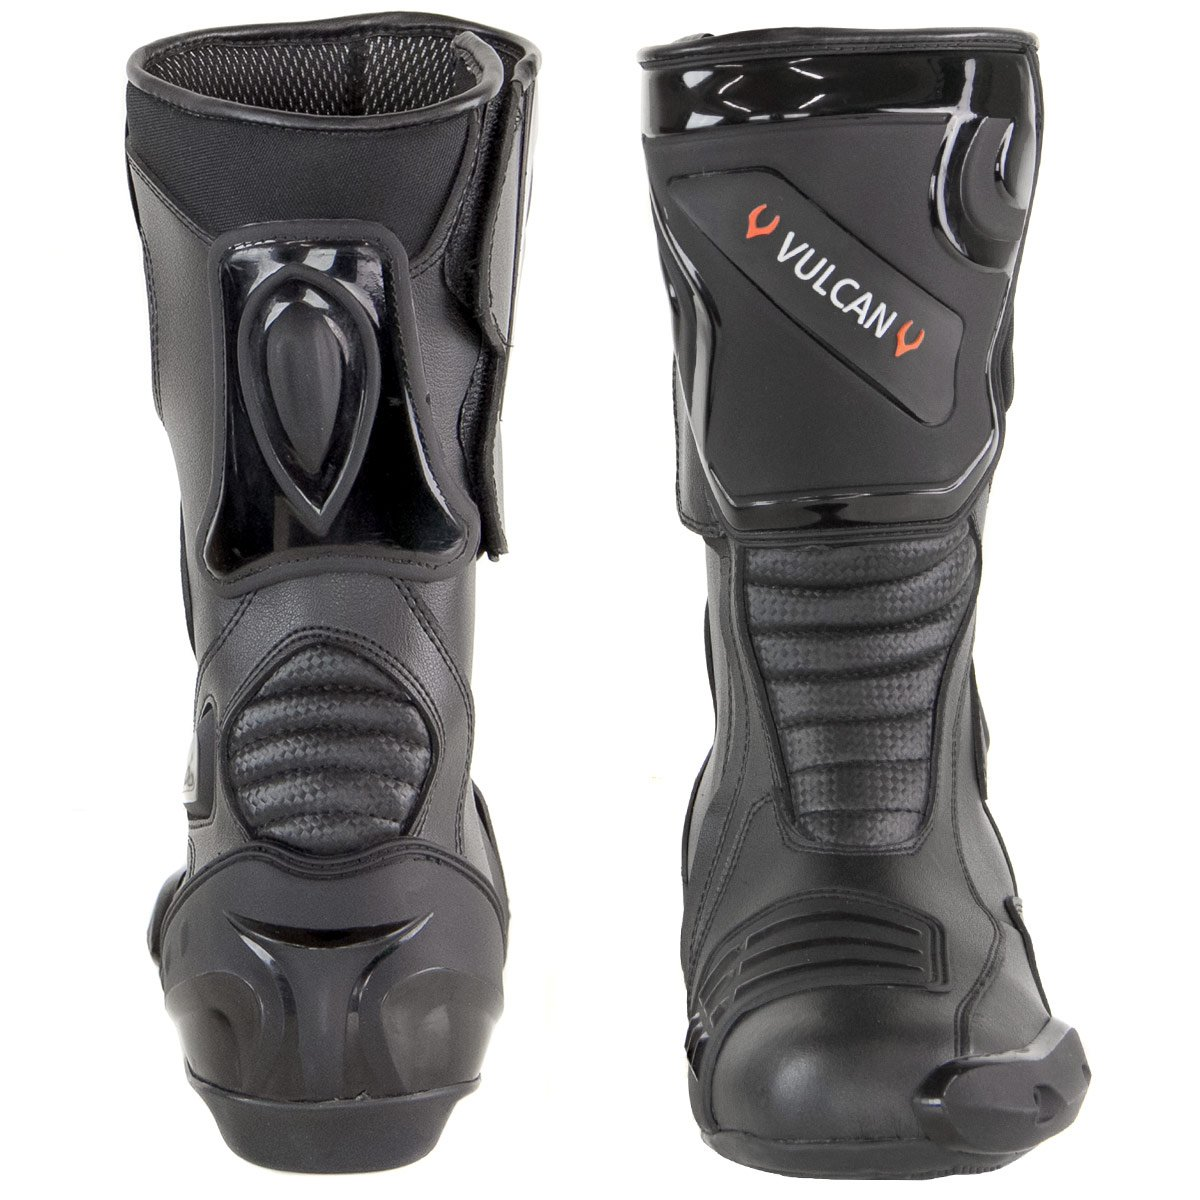 Vulcan V300 Mens Velocity Motorcycle Sport Boots - 11 by Vulcan (Image #3)